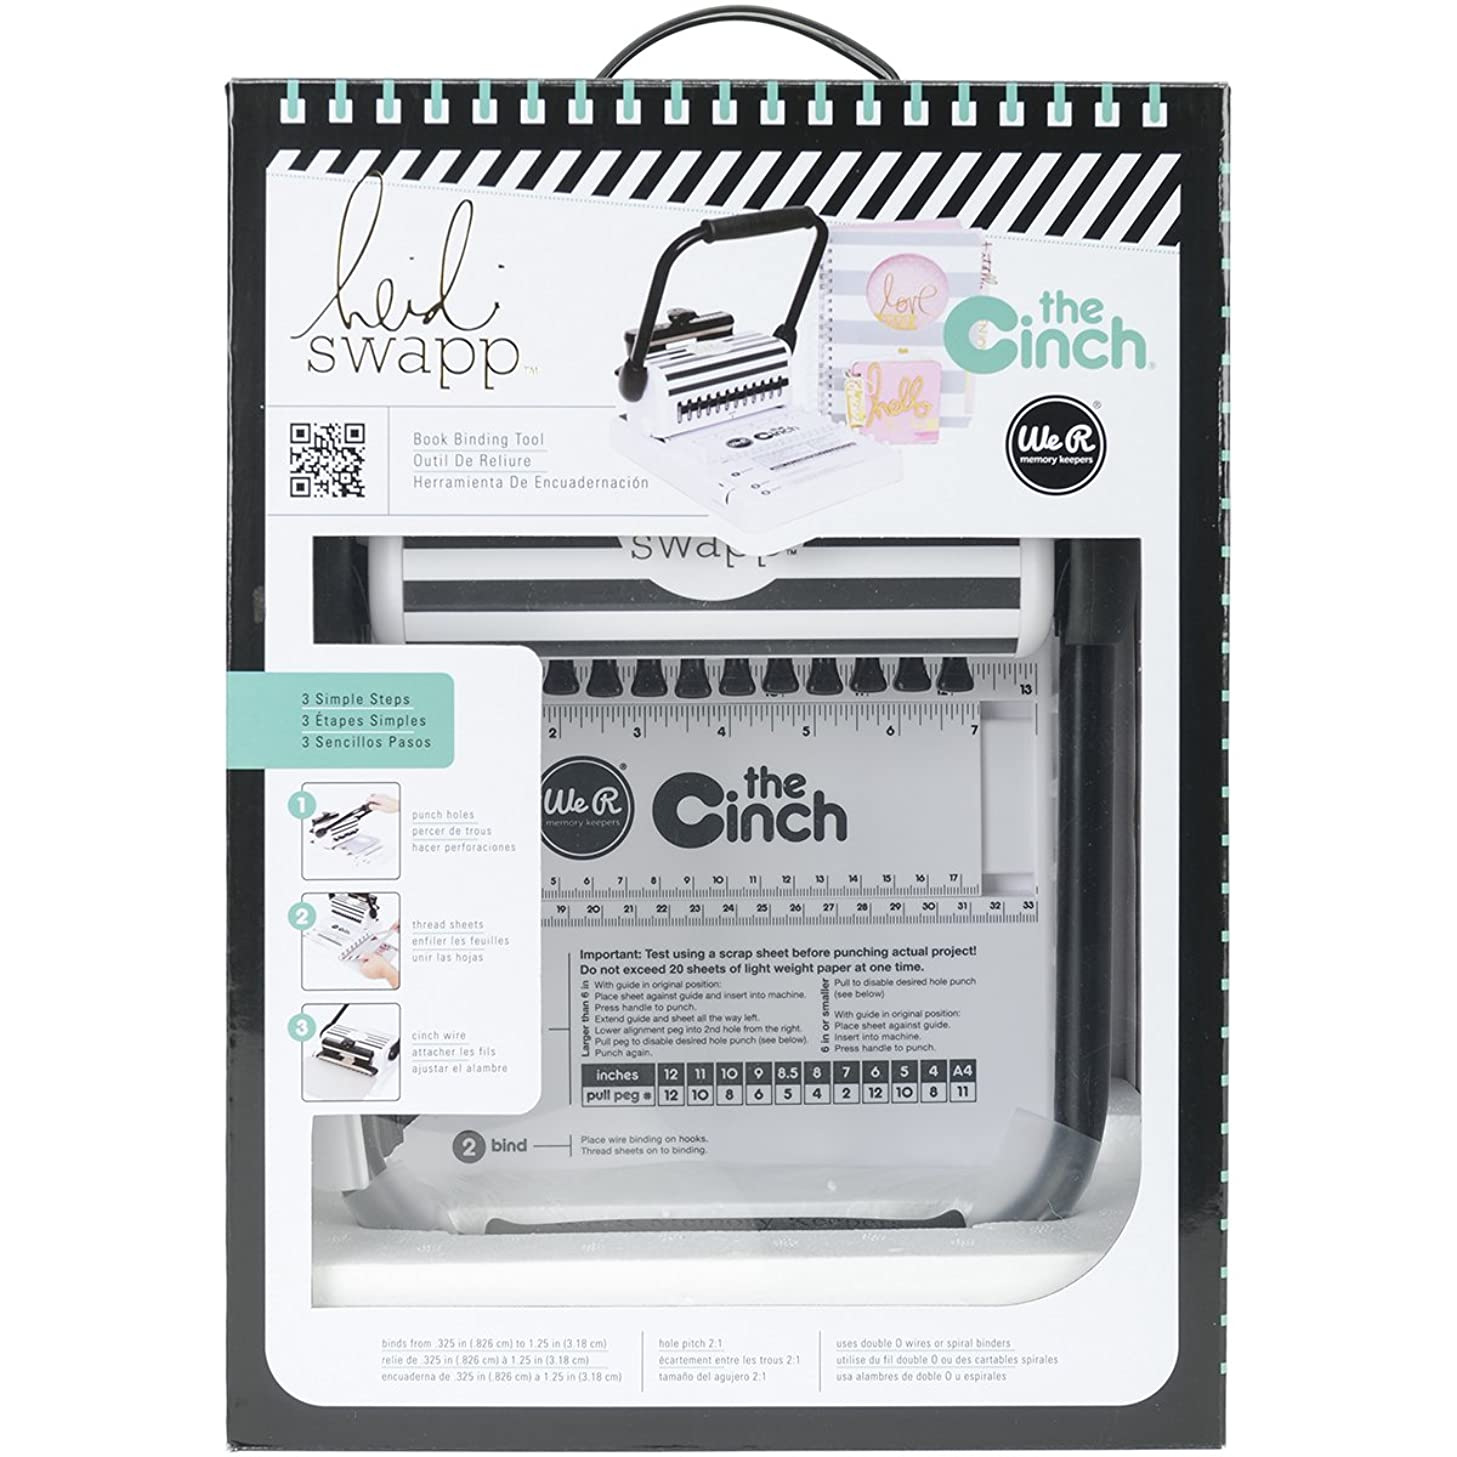 American Crafts Heidi Swapp Cinch Book Binding Machine by We R Memory Keepers | Black and White